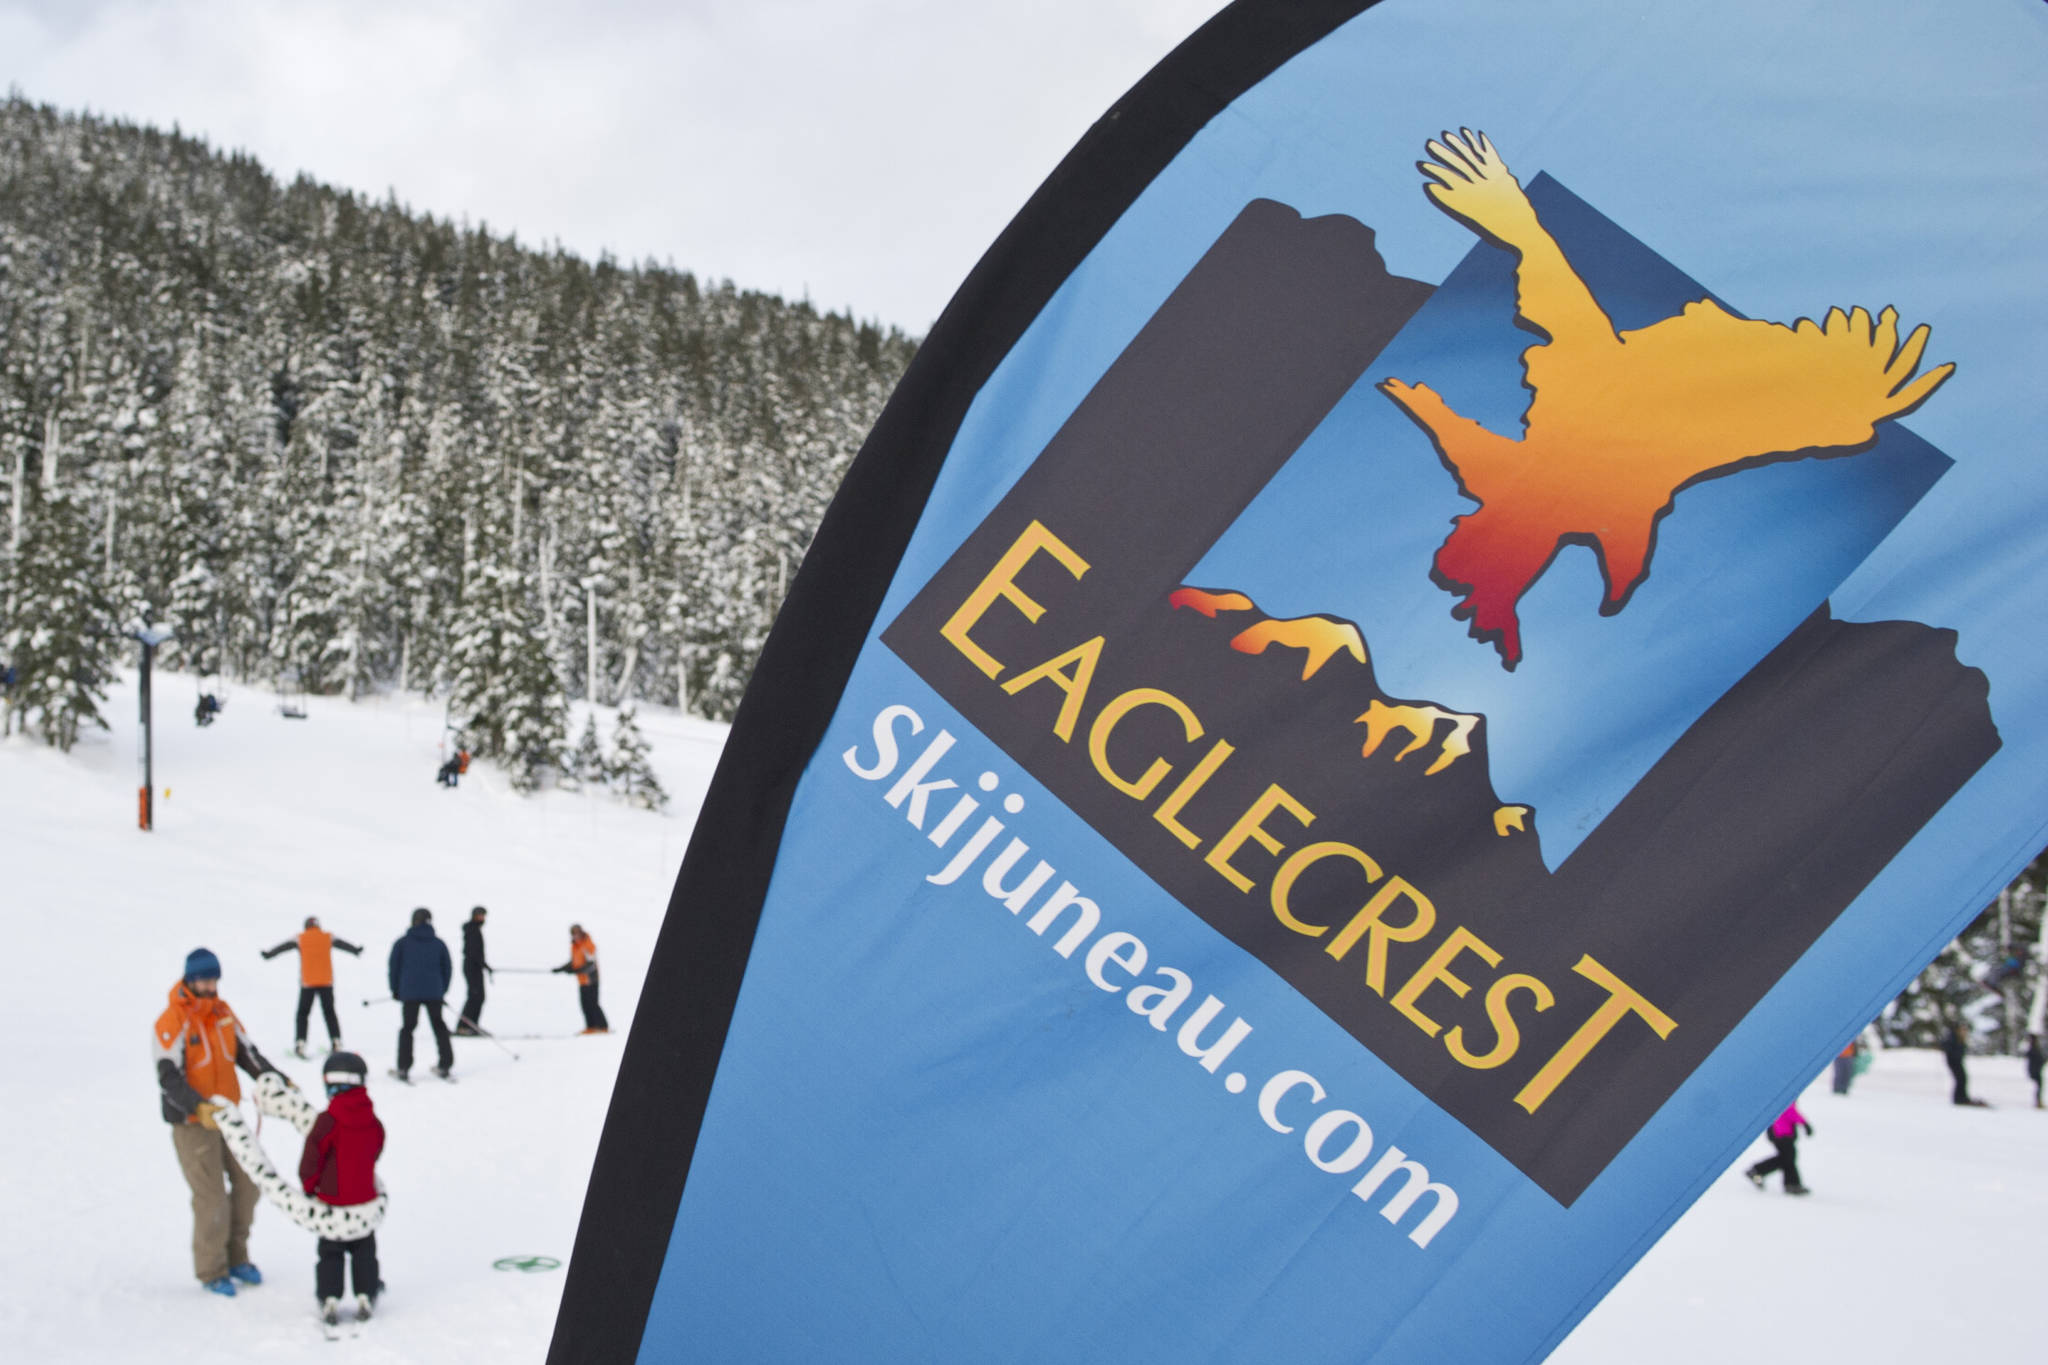 In this Jan. 6, 2017 photo, Juneau residents participate in the World's Largest Lesson at Eaglecrest Ski Area. (Michael Penn | Juneau Empire File)